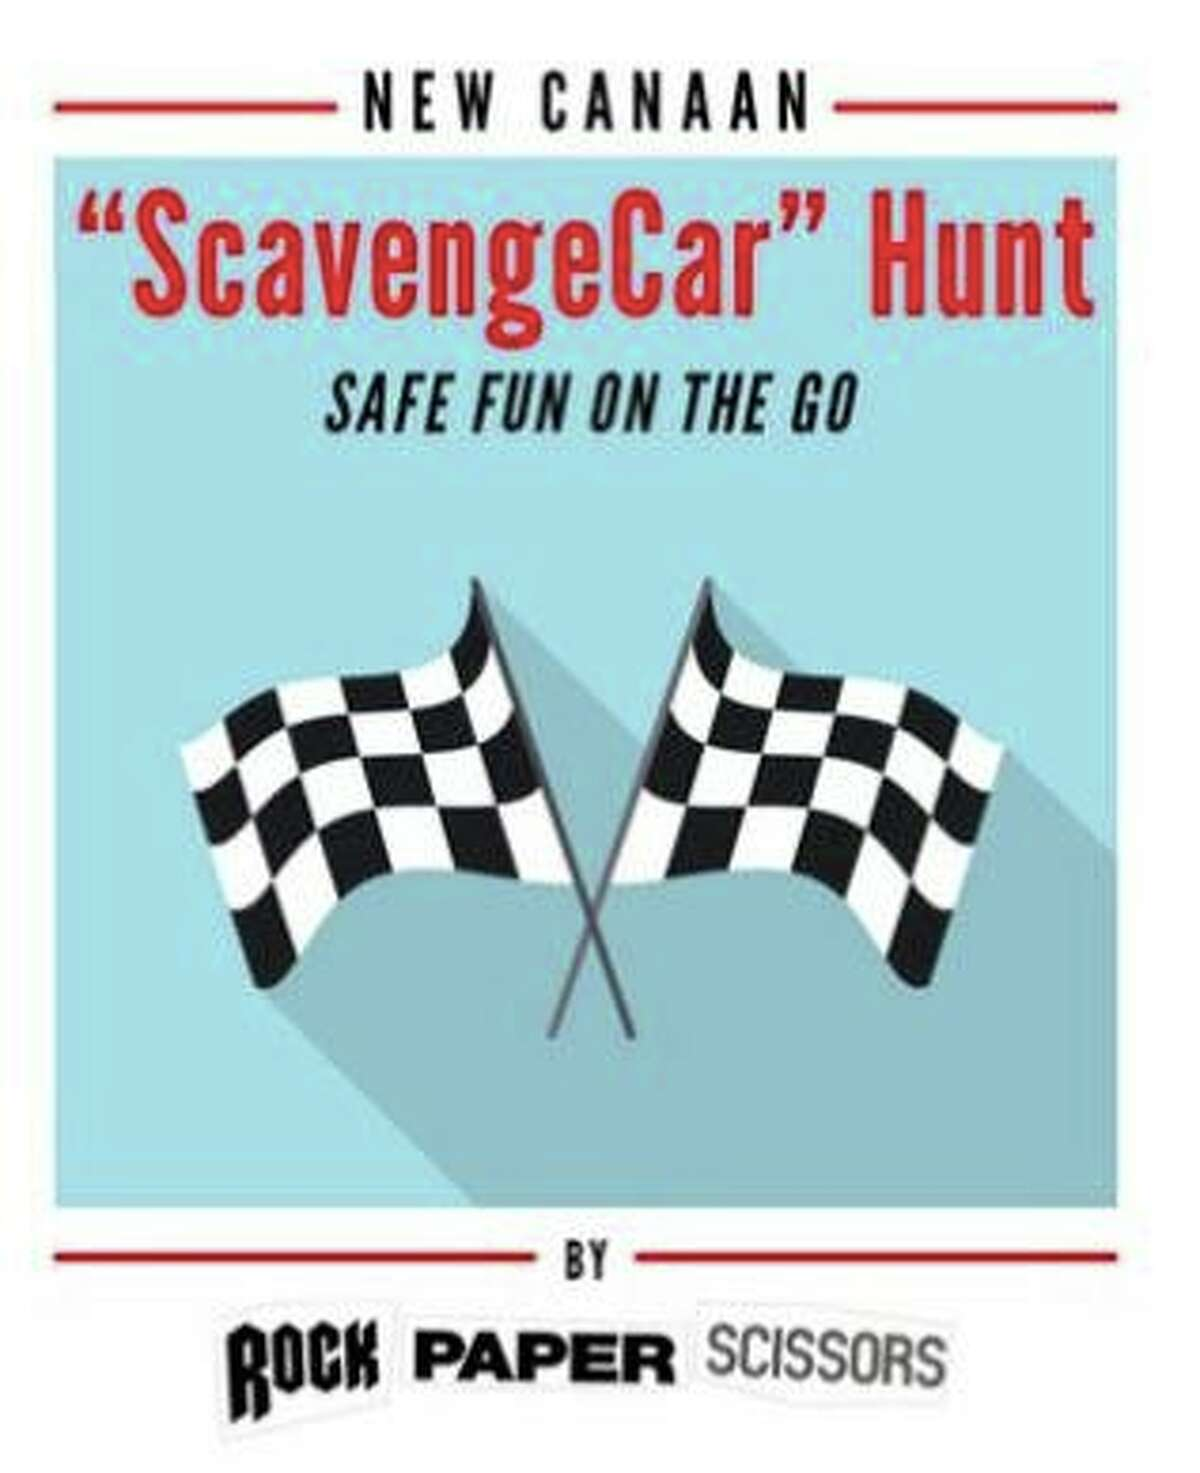 The New Canaan ScavengeCar Hunt by the New Canaan business, Rock Paper Scissors, and benefitting Meals on Wheels of New Canaan is going on now around town through January 2021. Pictured is a flyer for the hunt.